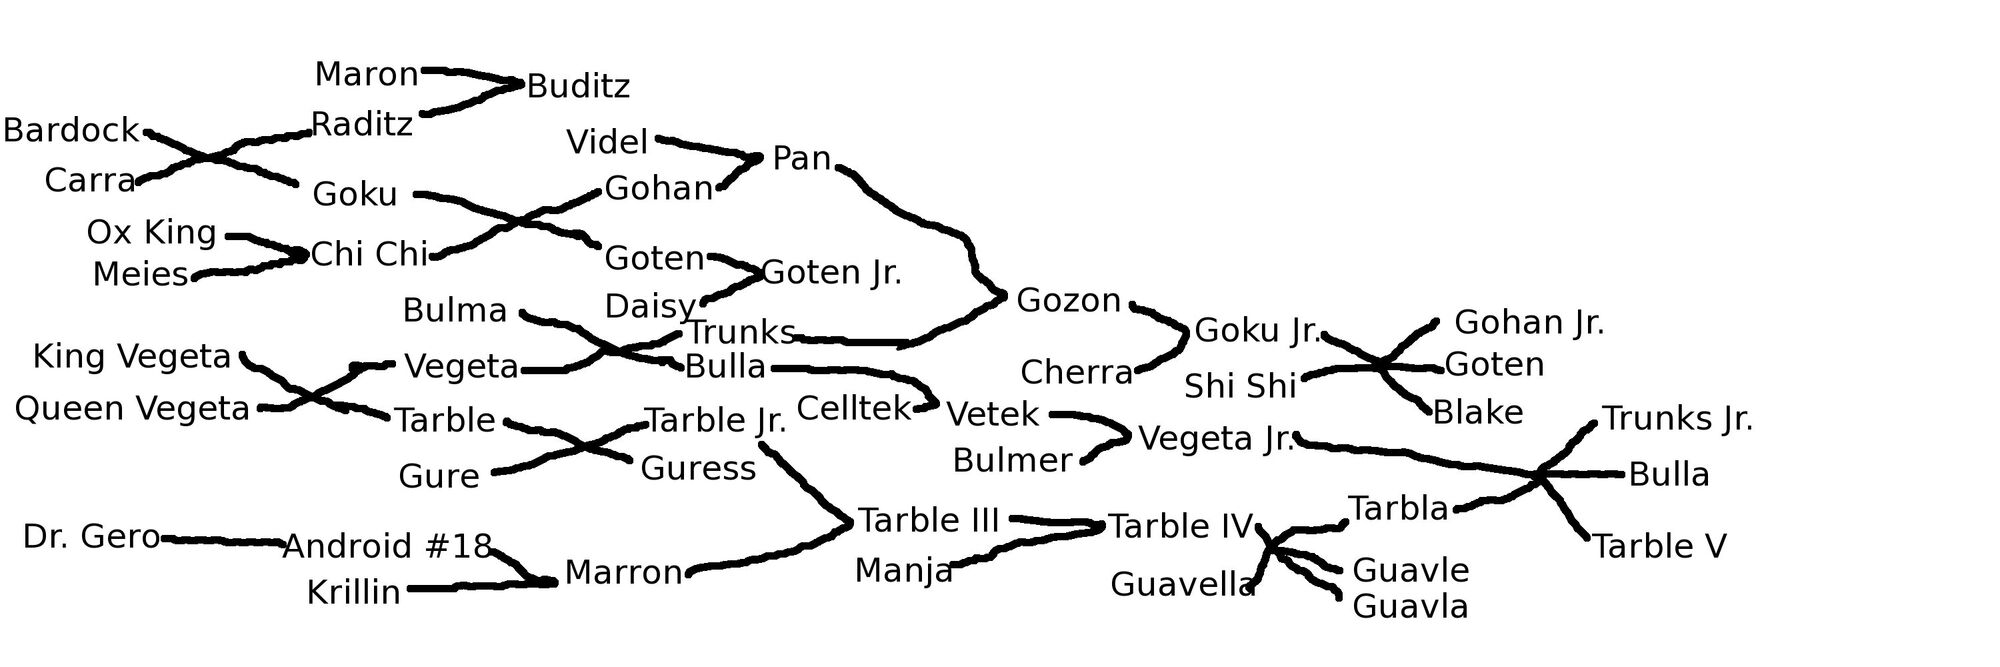 Dragon Ball Z Saiyan Family Tree (Gozon) | Dragonball ...